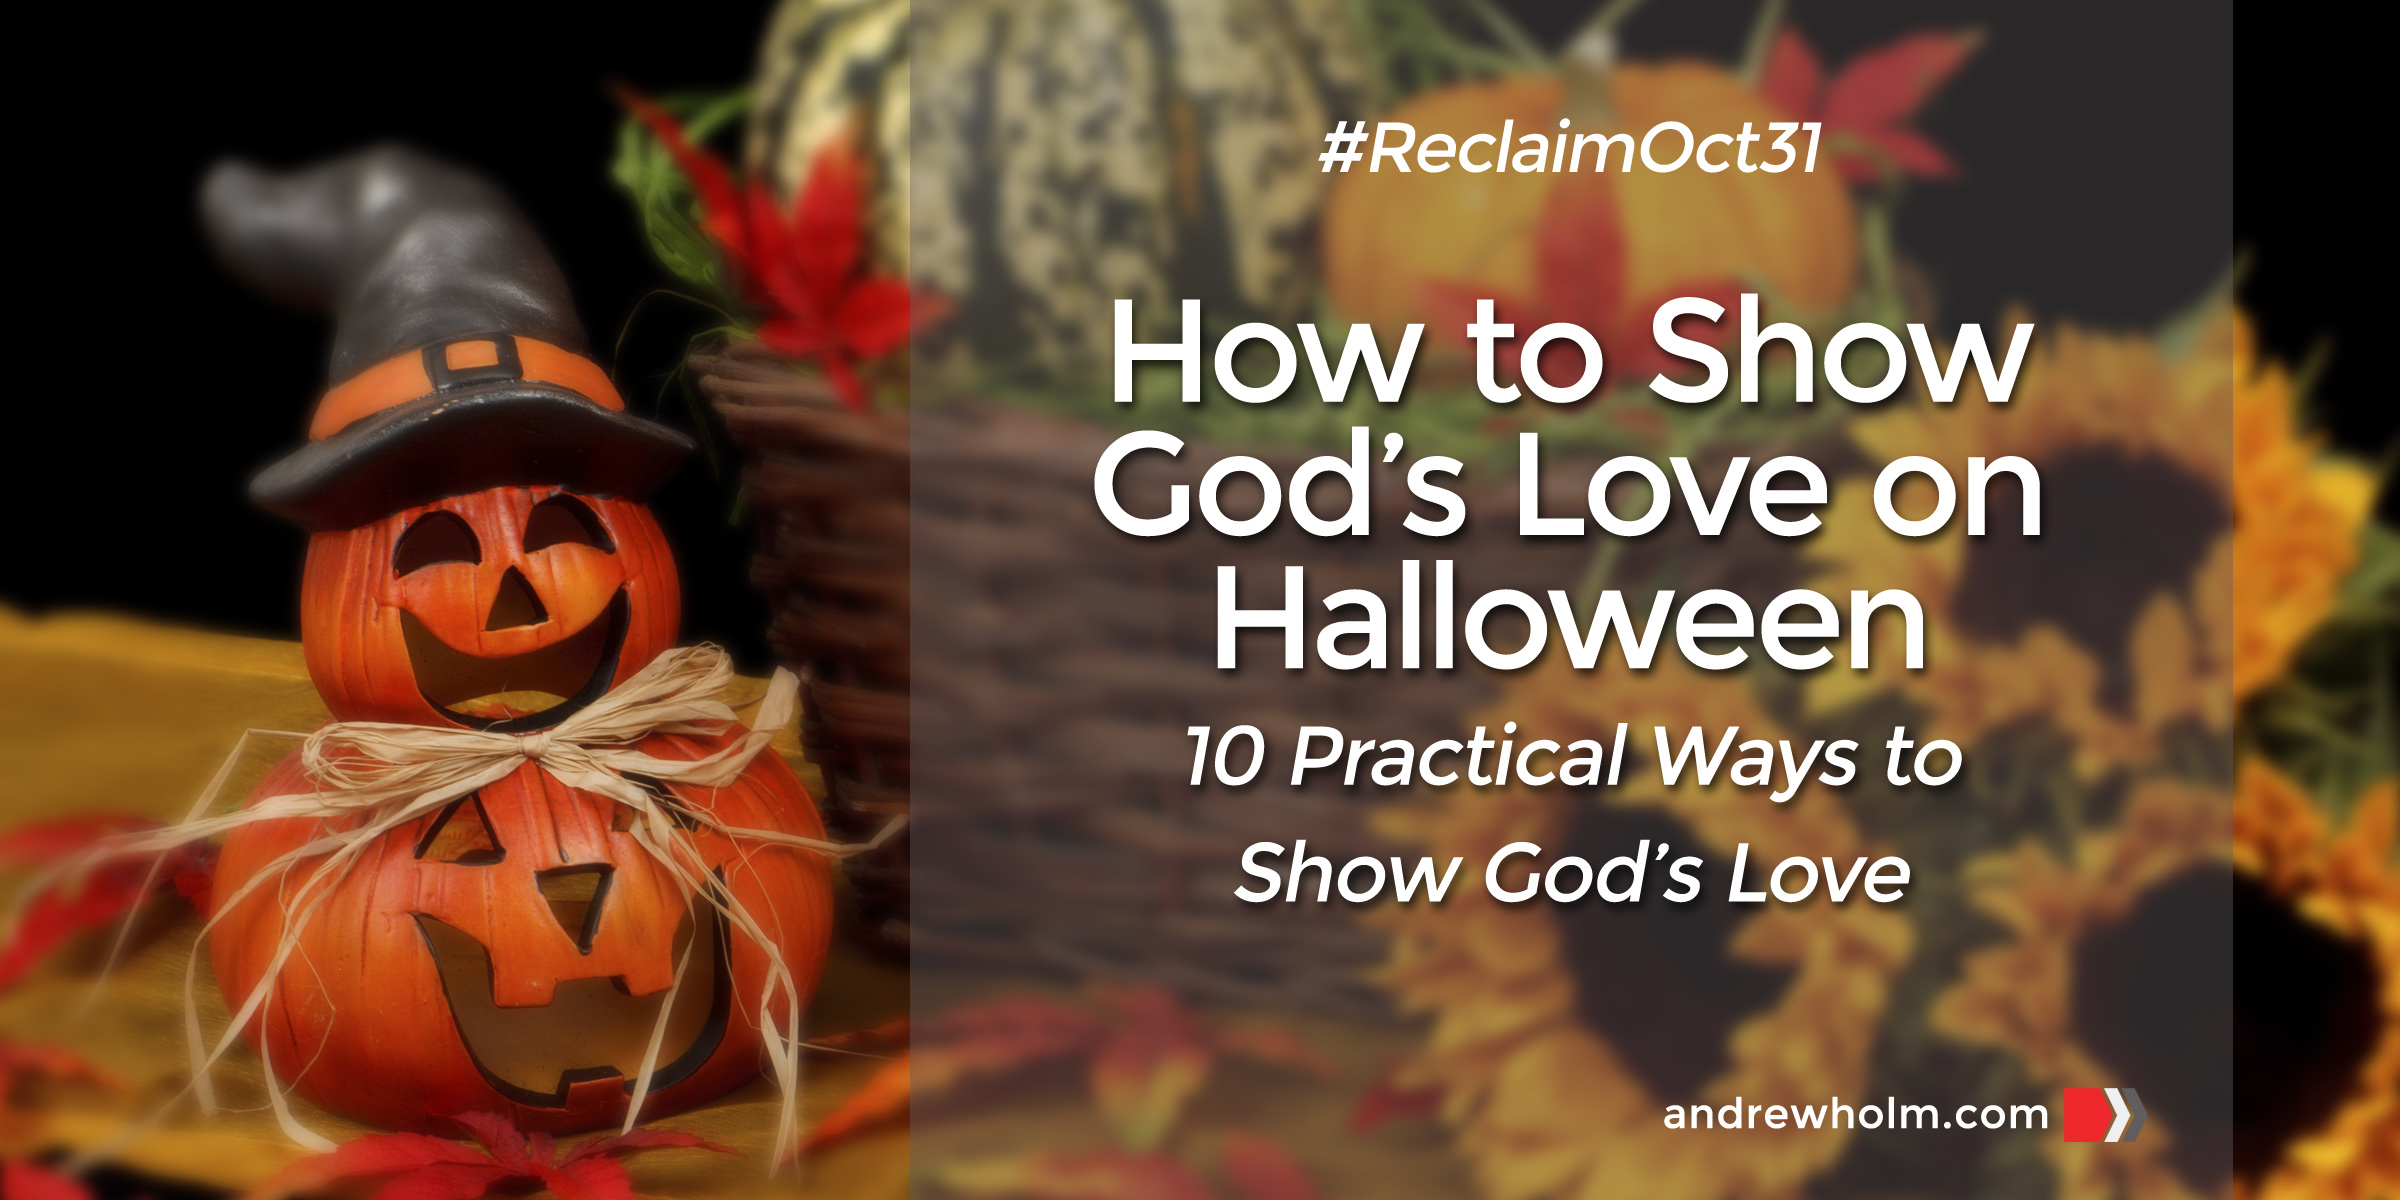 How to Show God's Love on Halloween